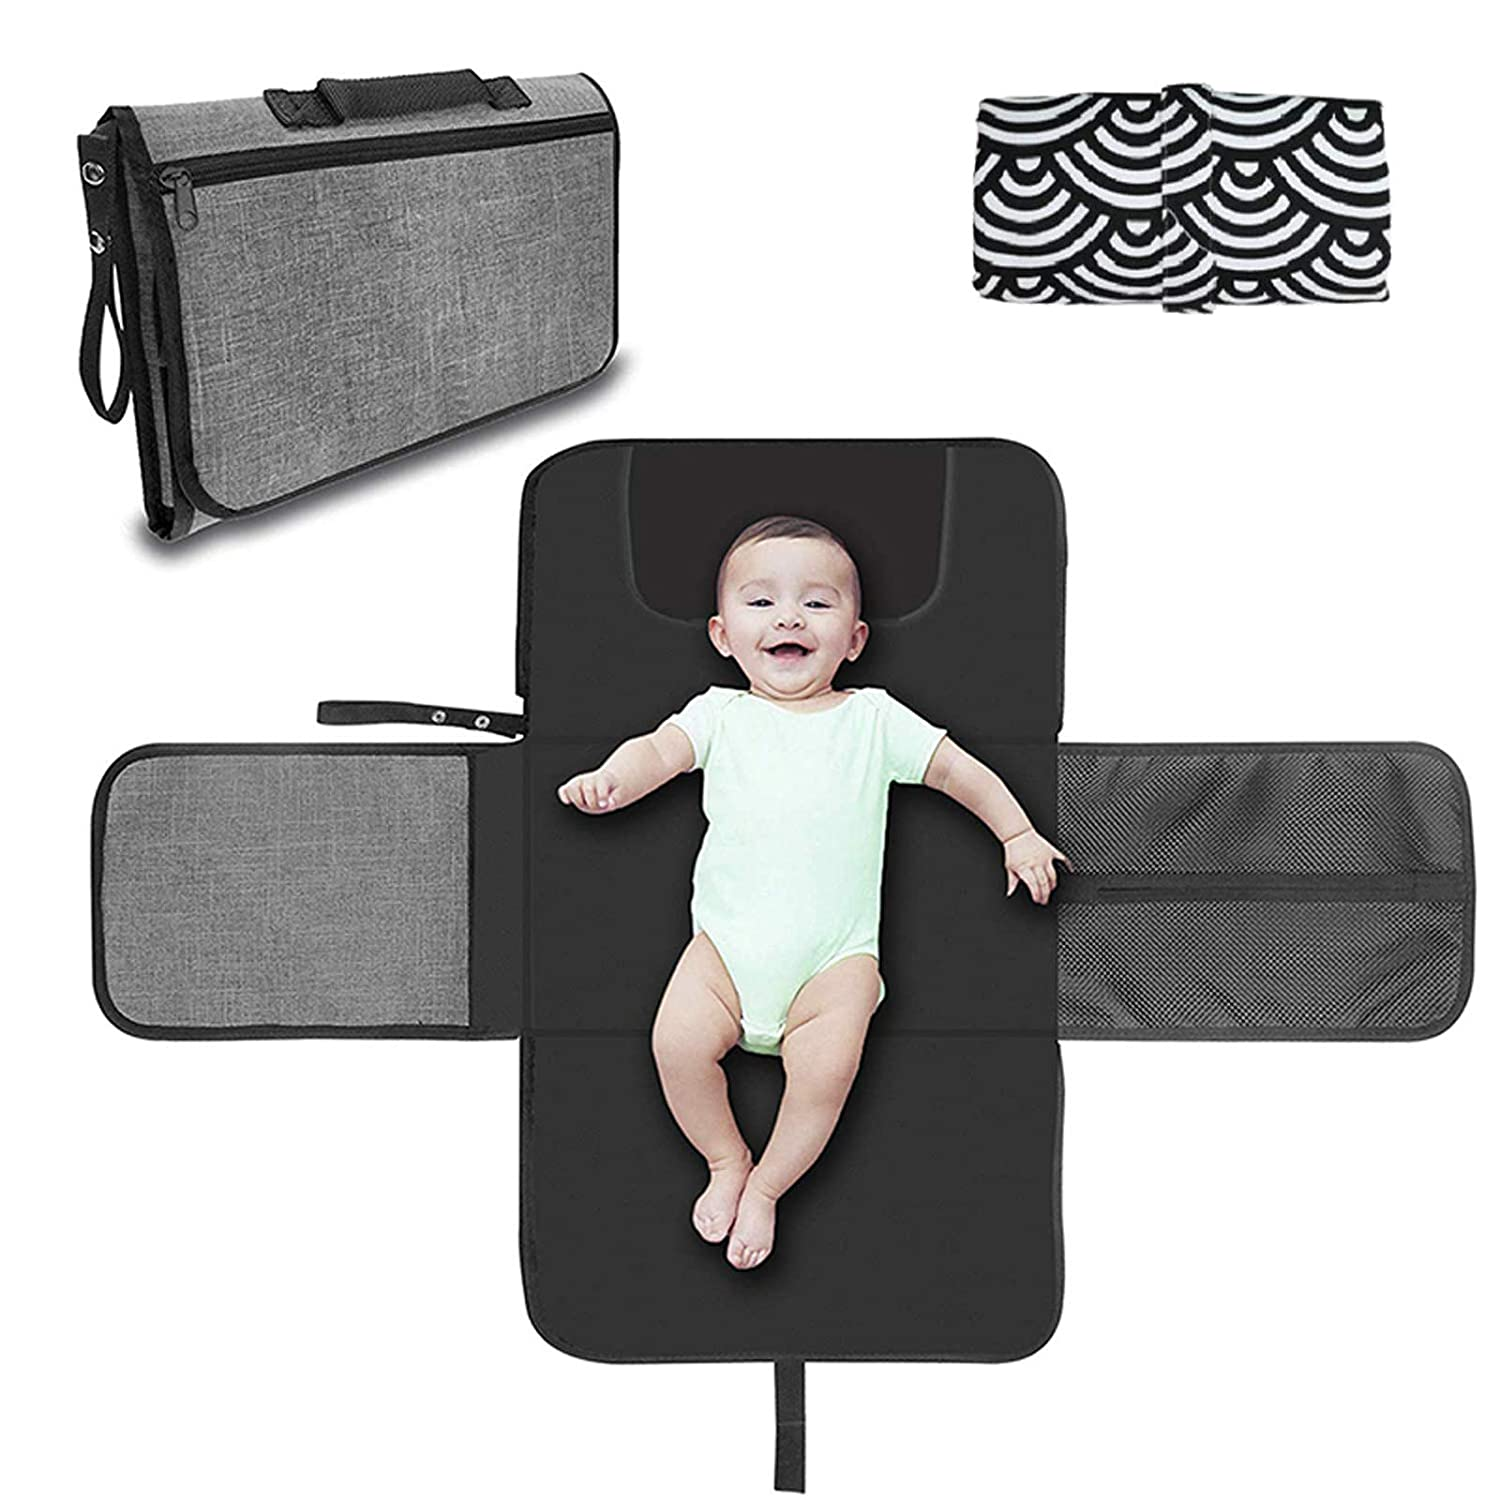 Baby Diaper Changing Pad, Detachable Waterproof Portable Diaper Changing Pad for Baby, with Built-in PillowBaby Shower Registry Gifts +Baby Changing Pad Waterproof, 2Pack